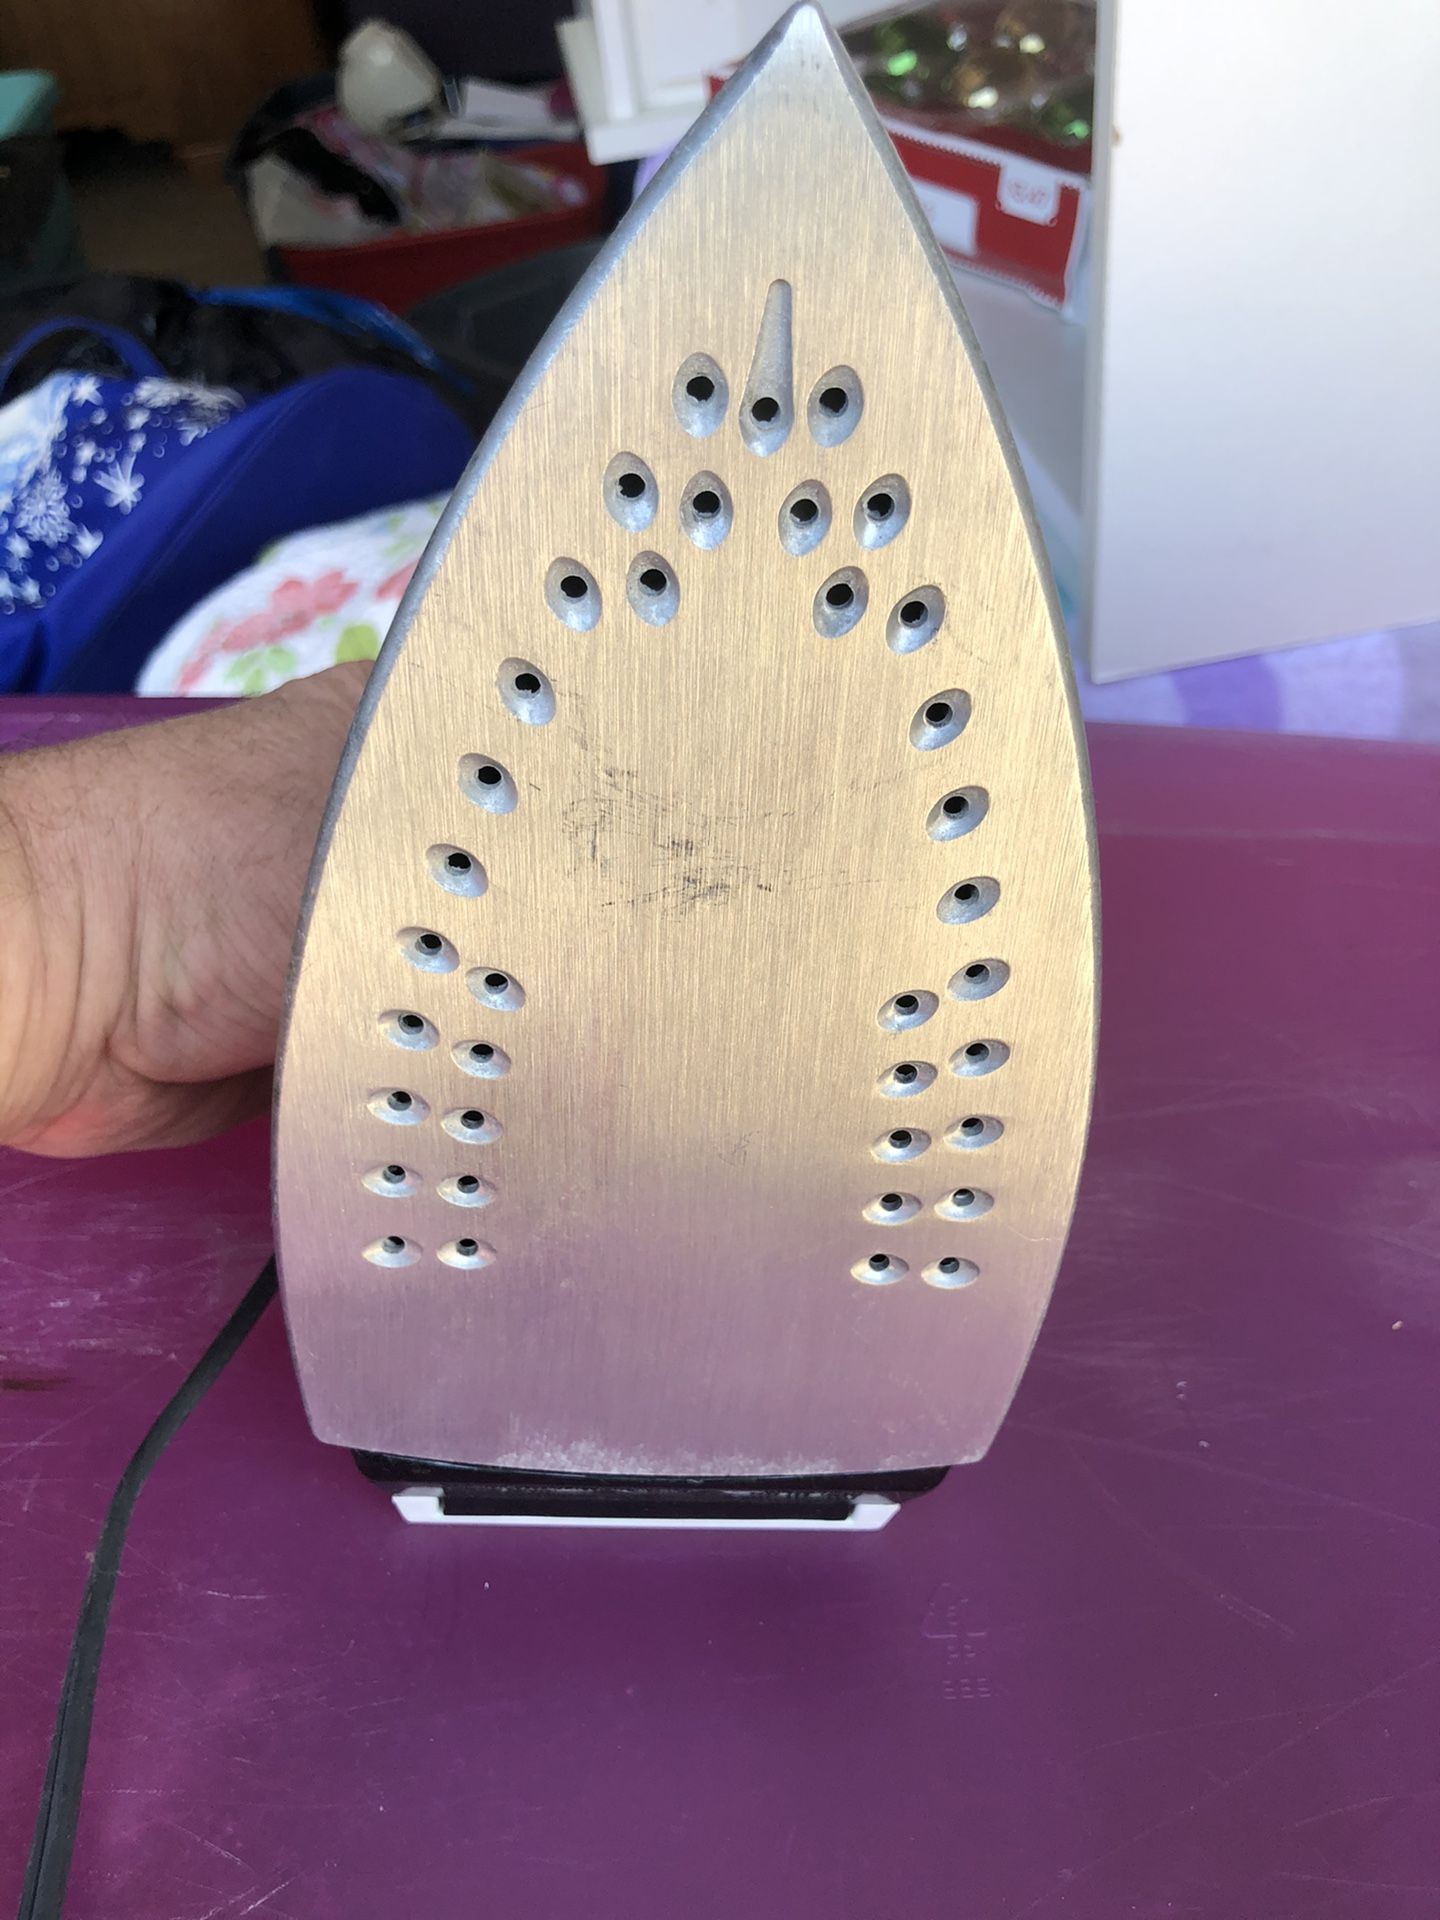 Ultra Ease Proctor Silex Electric Steam Iron, model 17109